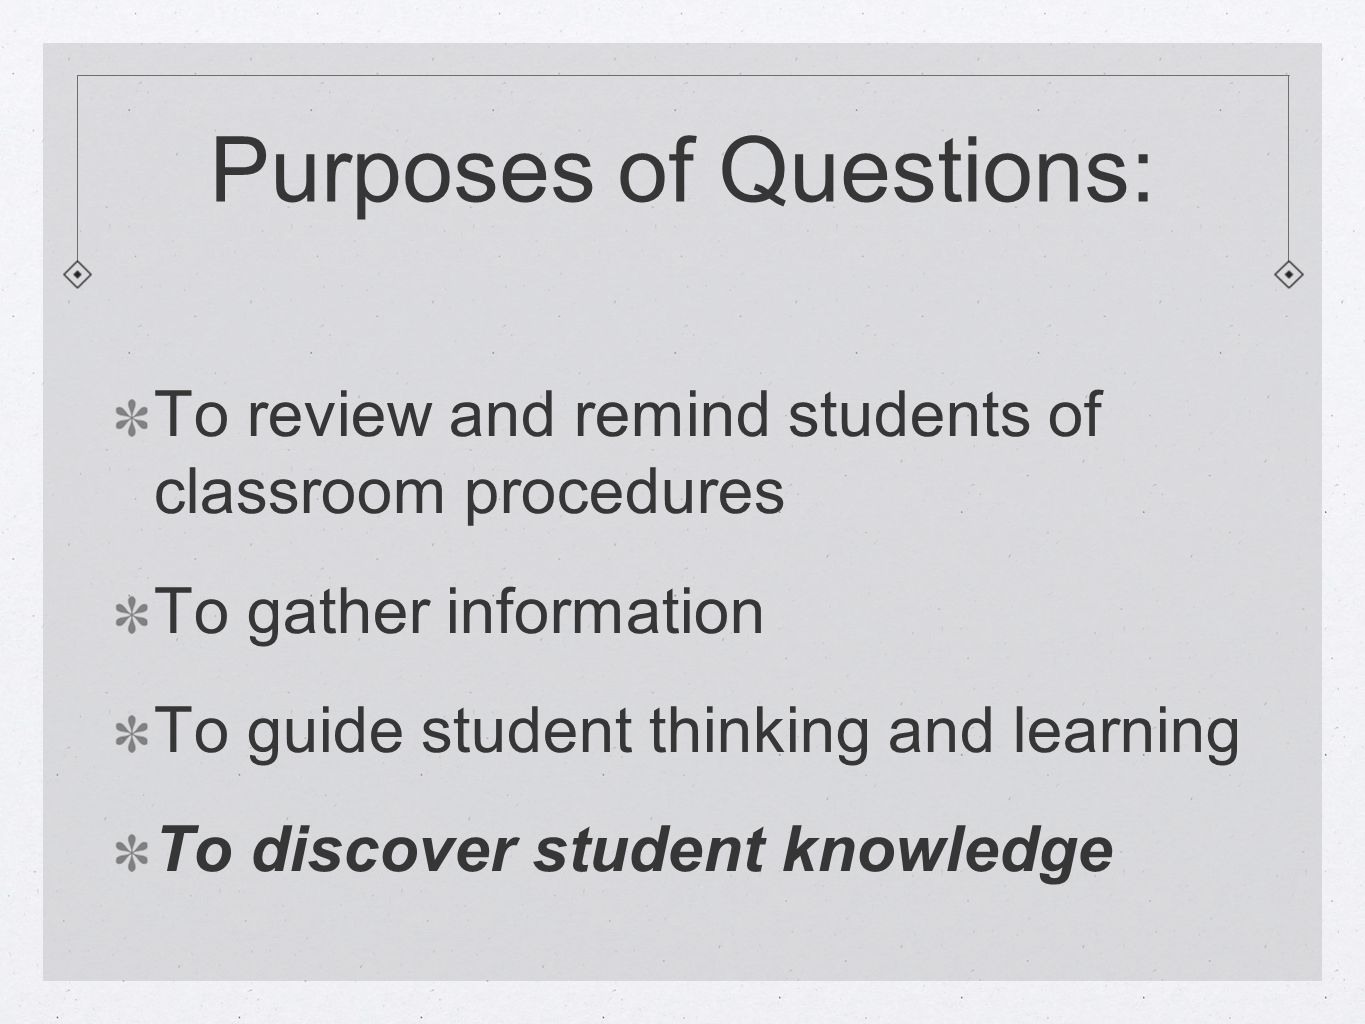 Types of cognitive questions: Clarifying questions: What I hear you saying is...(after a student has provided a response) Convergent questions: Narrow, low-order questions that demand a single, correct response (overused) - What is the capital of...) Analytic questions: Encourages students to analyze and evaluate information in front of them, e.g.